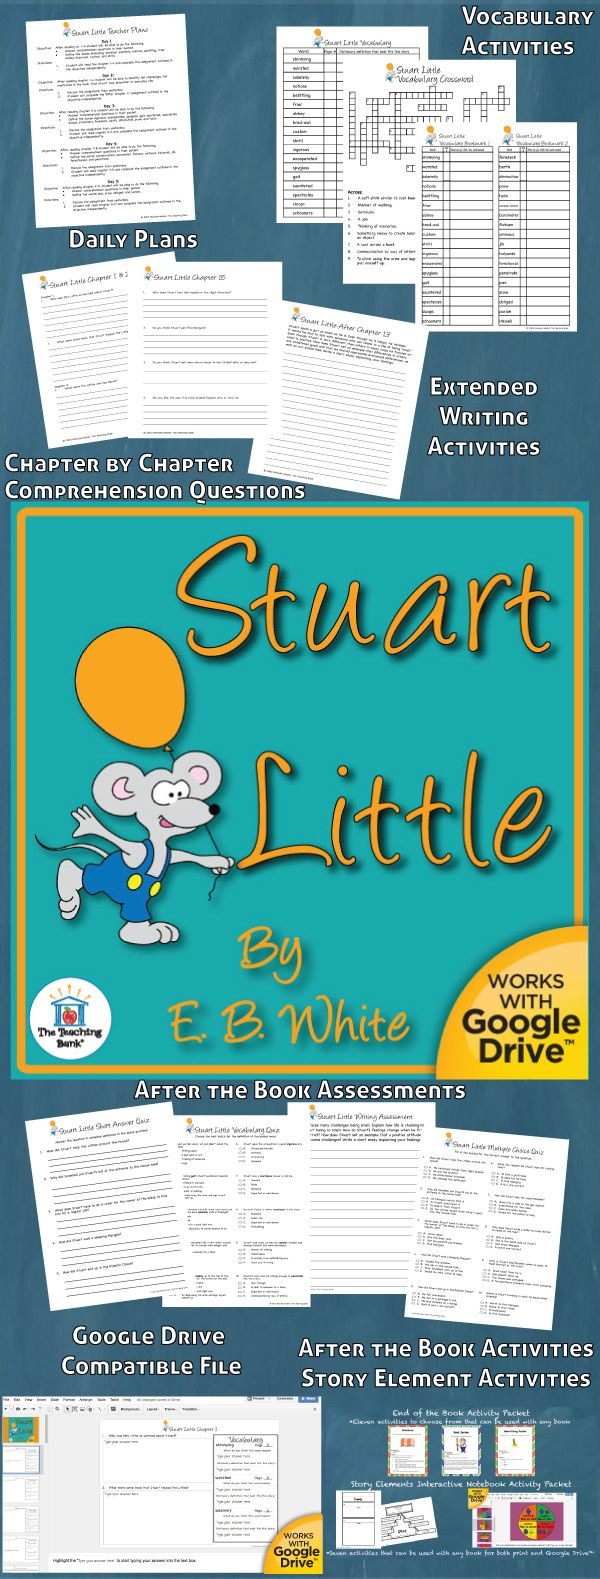 worksheet Stuart Little Worksheets Free 68 best stuart little activities images on pinterest novel study is a common core standard aligned book unit to be used with